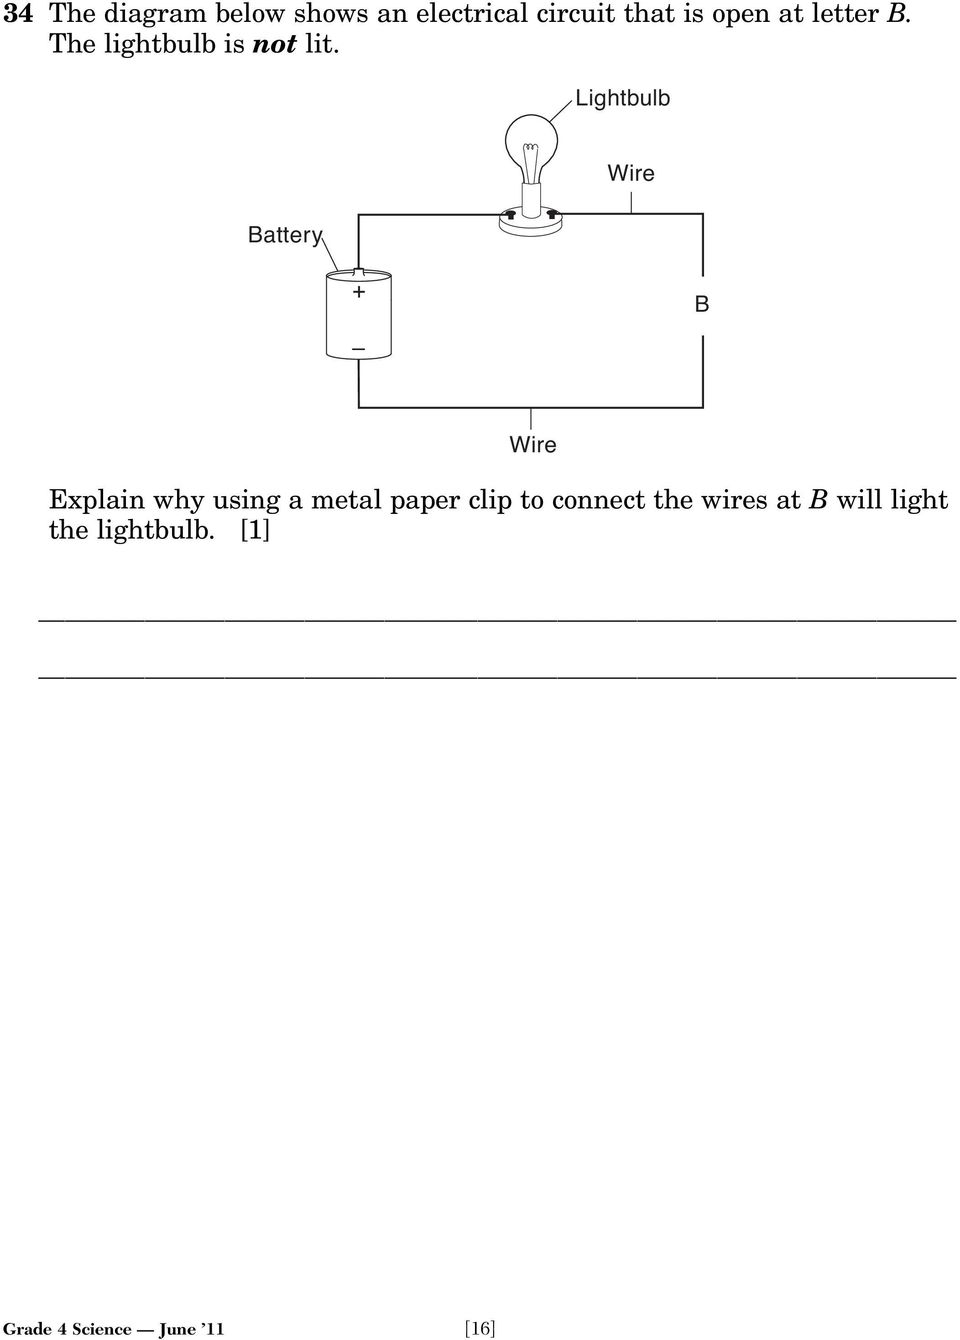 Lightbulb Battery Wire + B Wire Explain why using a metal paper